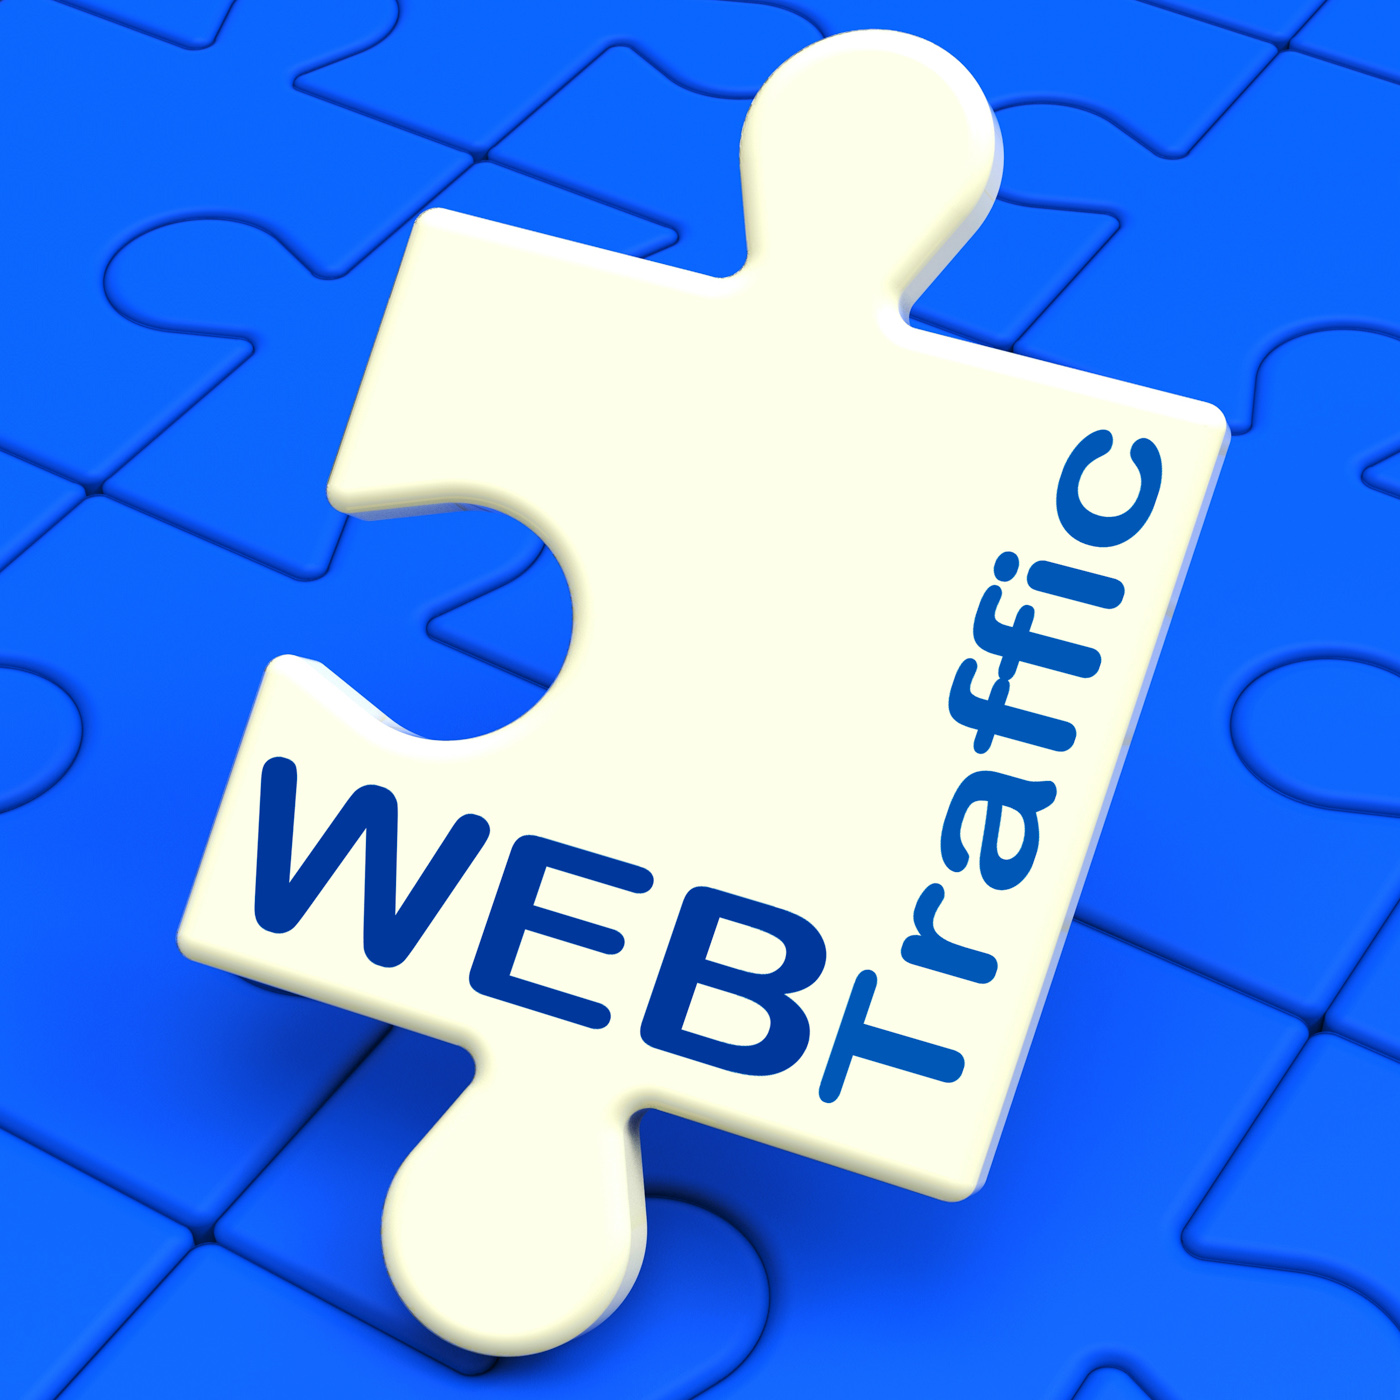 Web traffic shows visitors to website photo